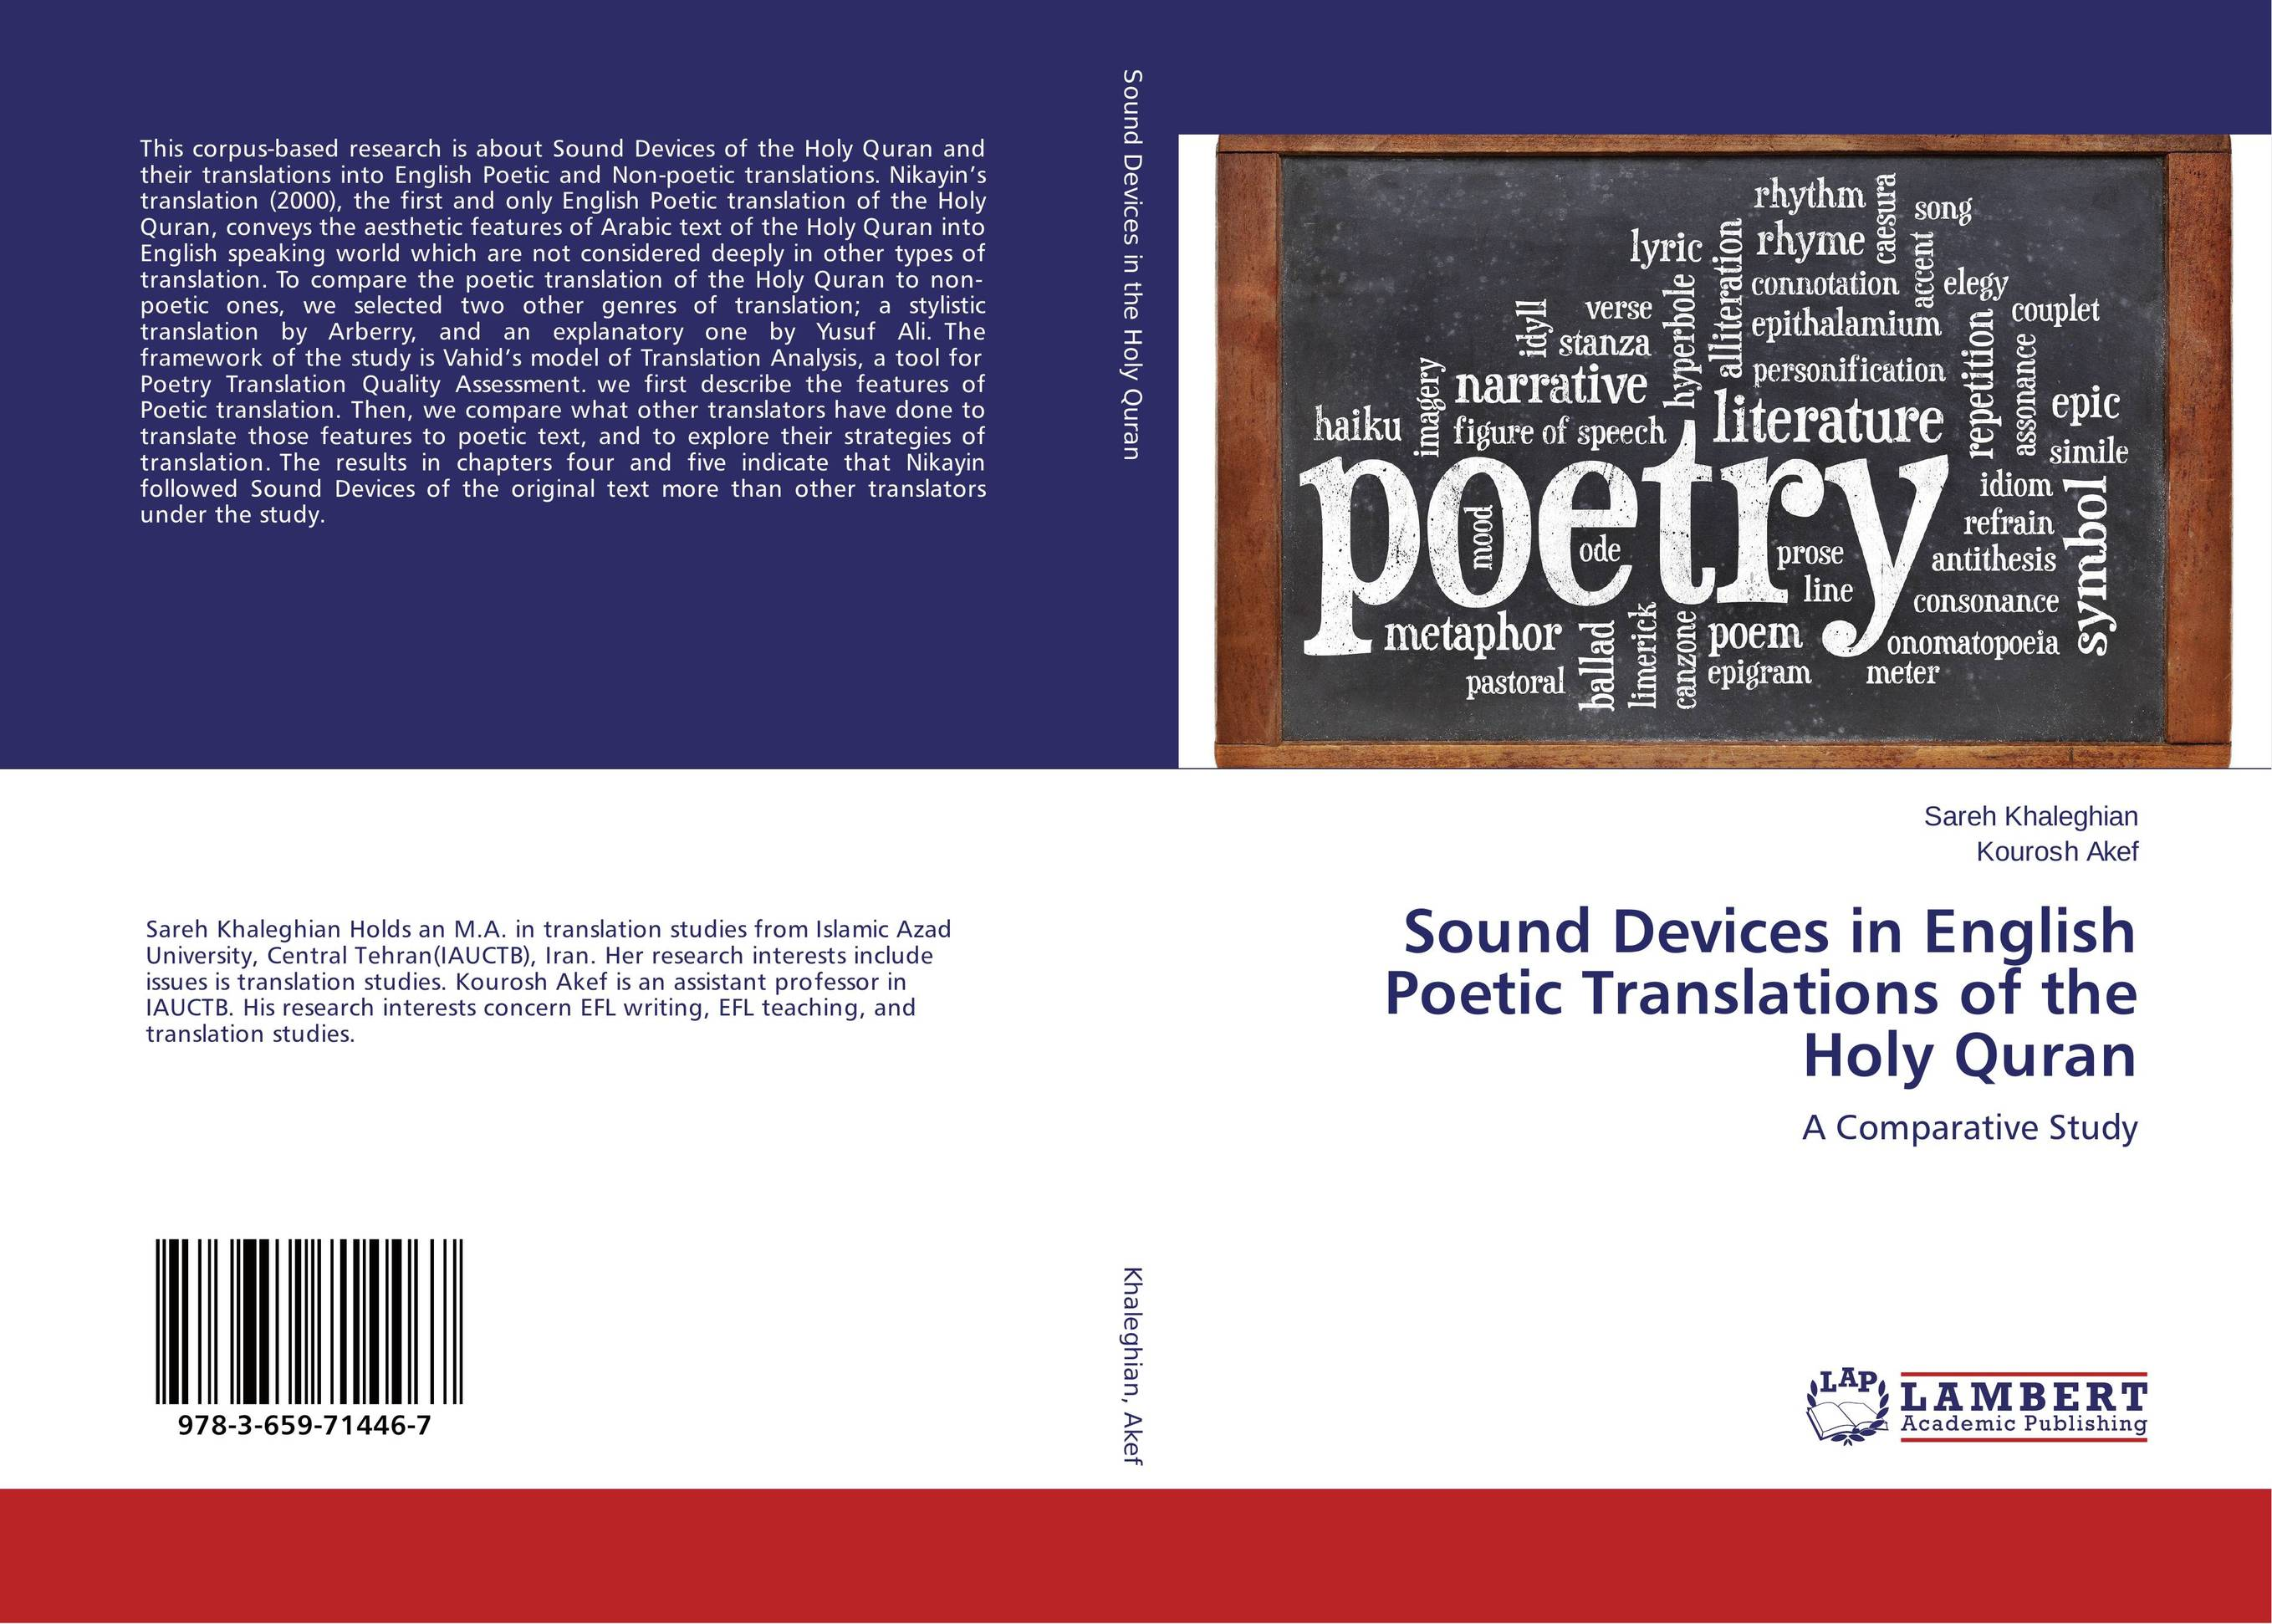 Sound Devices in English Poetic Translations of the Holy Quran the internal load analysis in soccer